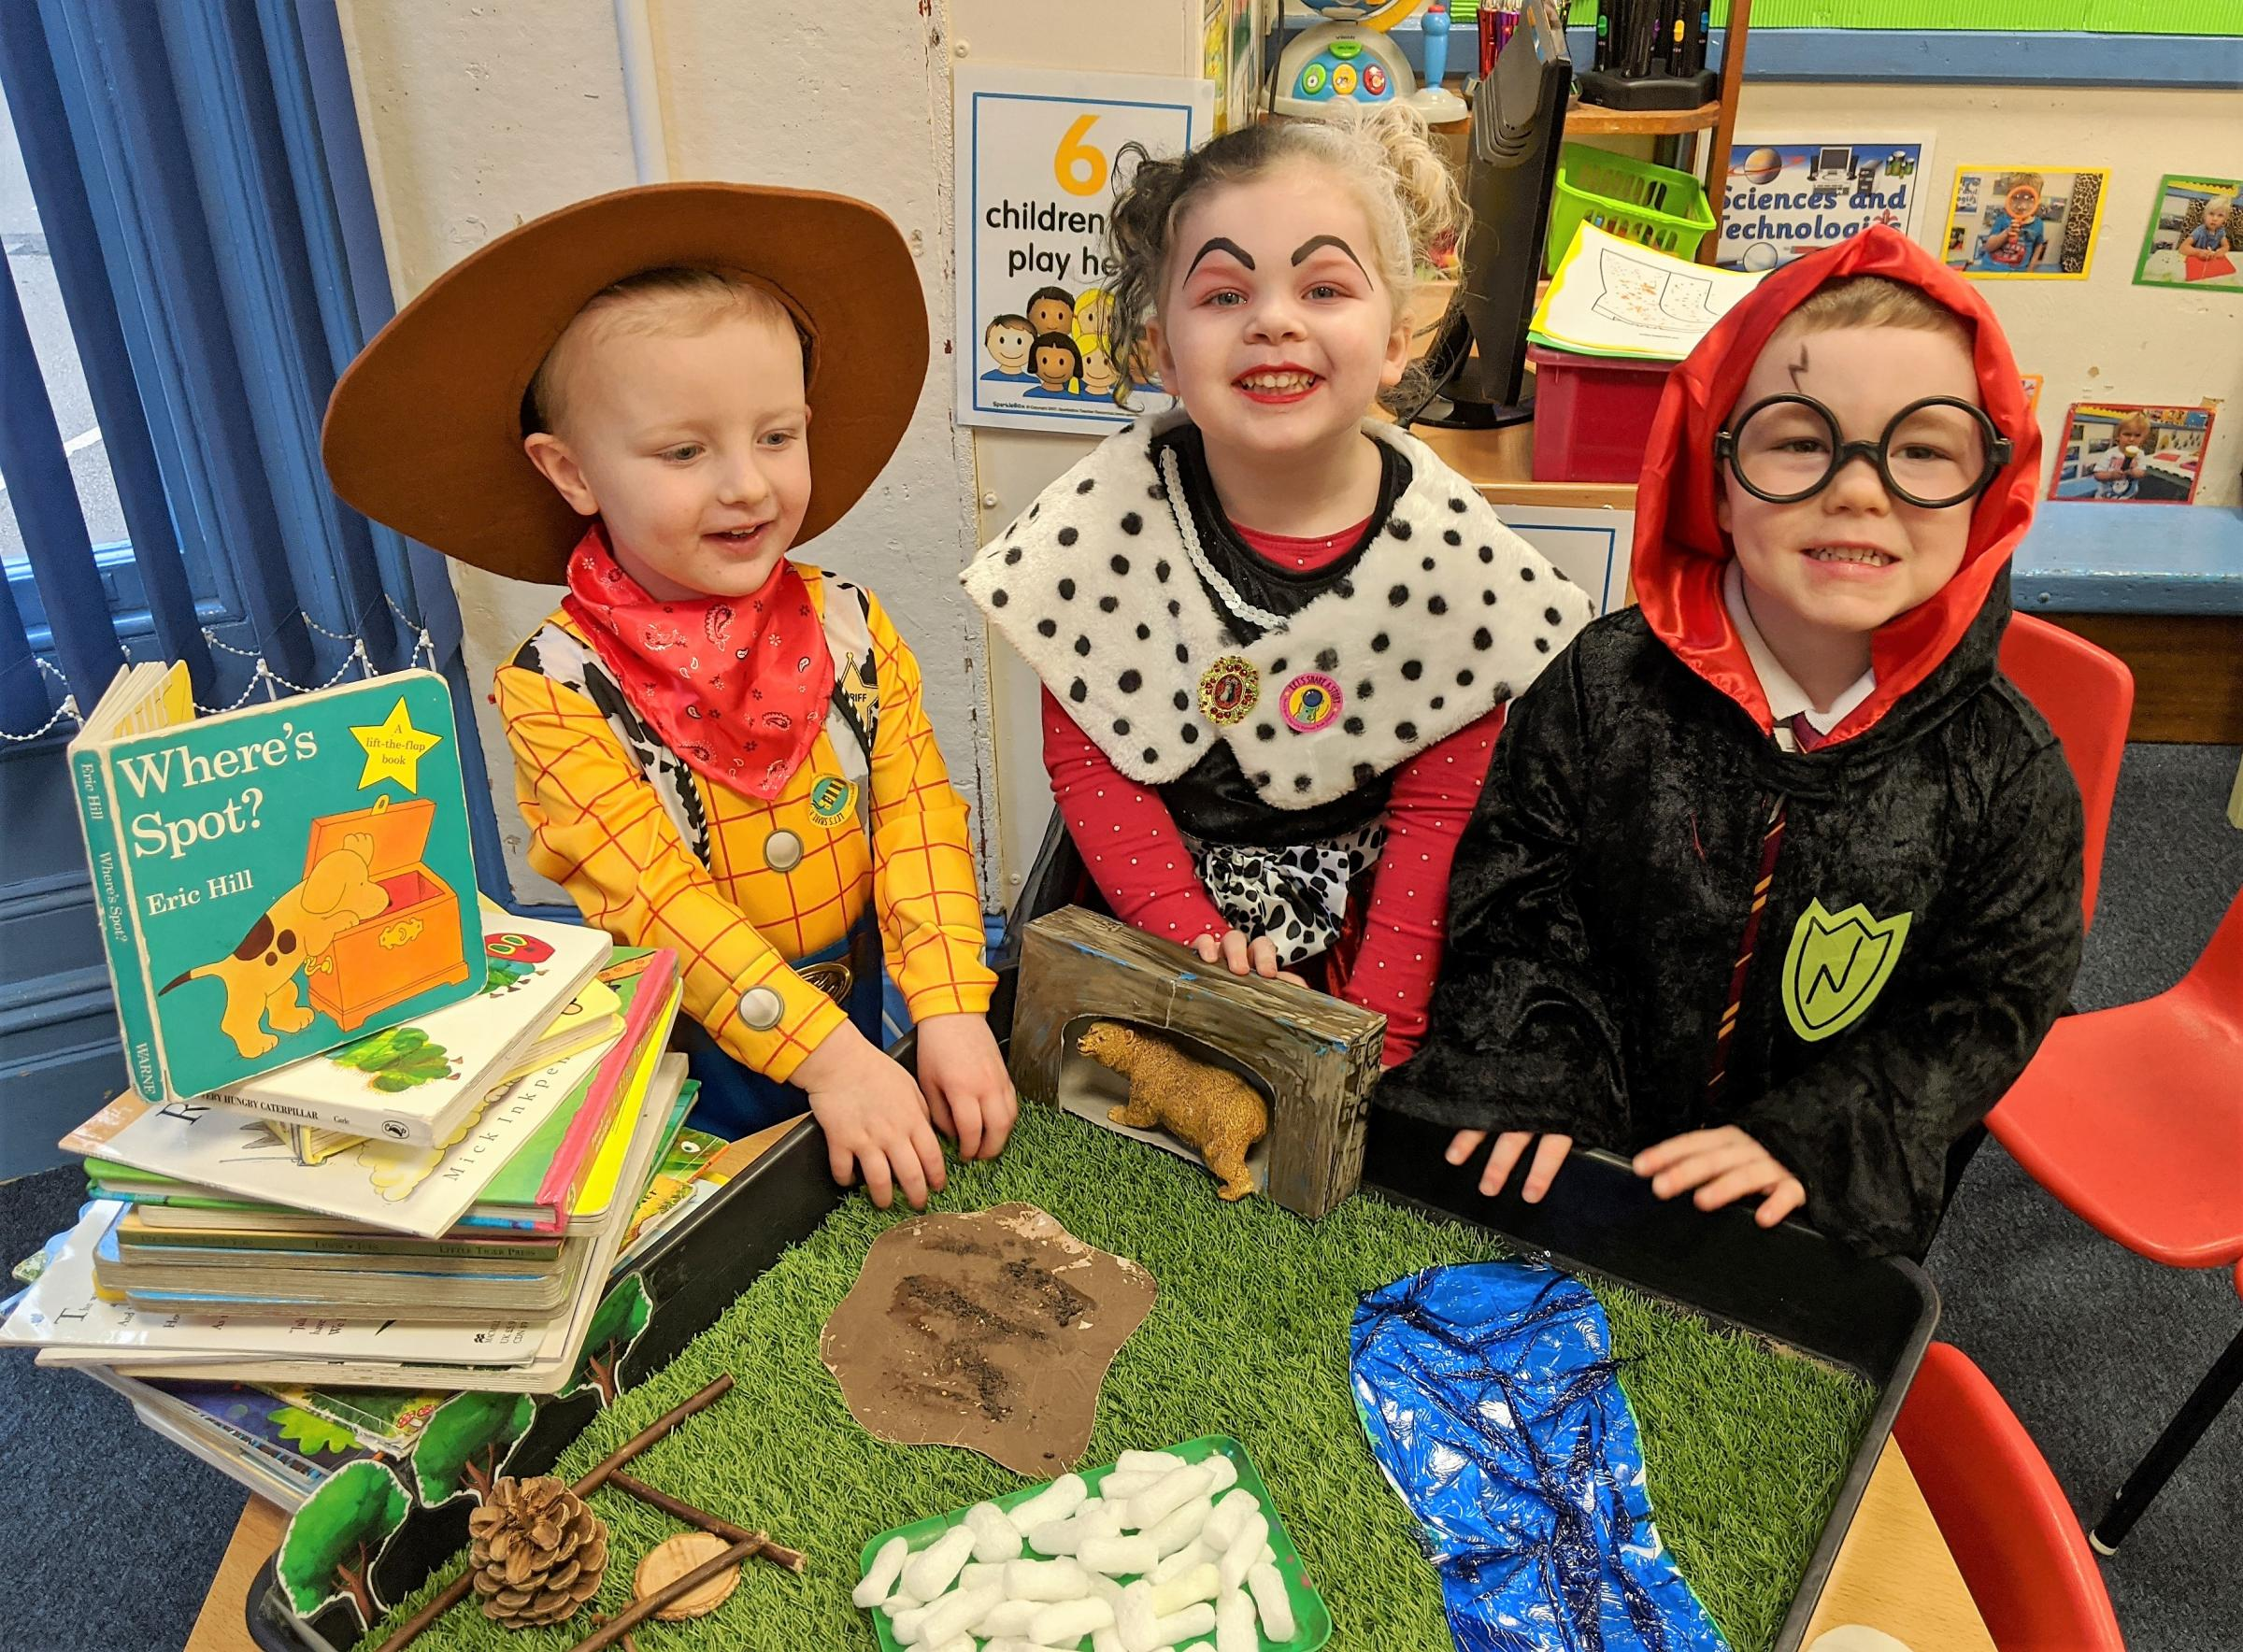 "Droitwich Advertiser: The children at Kidderminster's Little Trinity Nursery shared a wonderful week and dressed up as their favourite book character to celebrate World Book Day on Thursday 5th March.Nursery Manager, Gaynor Carter, said: ""Each class throughout the week focused on their favourite stories.""Yellow Bumble Bee room enjoyed 'Going on a Bear Hunt' and 'Dear Zoo' whilst our Red Ladybird room enjoyed reading 'The Enormous Turnip', 'Elmer' and 'Who am I asked the Butterfly?' with activities including going on a minibeast hunt, looking at the butterfly lifecycle and preparing a butterfly garden ready for the baby caterpillars when they finally arrive in a few weeks' time.""They also enjoyed story sacks and mirror play, looking at similarities and differences as well as taking part in role play activities using facemasks and using the 'Bear Hunt' tuff tray for small world play as well as enjoying a Superhero themed lunch. In a week-long celebration of books, ninety-four children took part with the highlight being children and staff dressing up as their favourite characters on World Book Day. Added Gaynor: ""We celebrate World Book Day every year because language, literacy and communication is such a vital part of a child's learning and story time is very often their favourite time of the day. ""Encouraging reading and enjoyment of books is part of our weekly activities, with our lending library offering the children a chance to choose a book that they can then take home and share with their families. World Book Day is a great excuse to simply have fun, share stories, enjoy a favourite book and dress up. What an amazing week!""Image details from L to R: Little Trinity Nursery children 3-year old Oliver Need, 4-year old Felicity Janes and 3-year old Harry Parsons having fun on World Book Day."